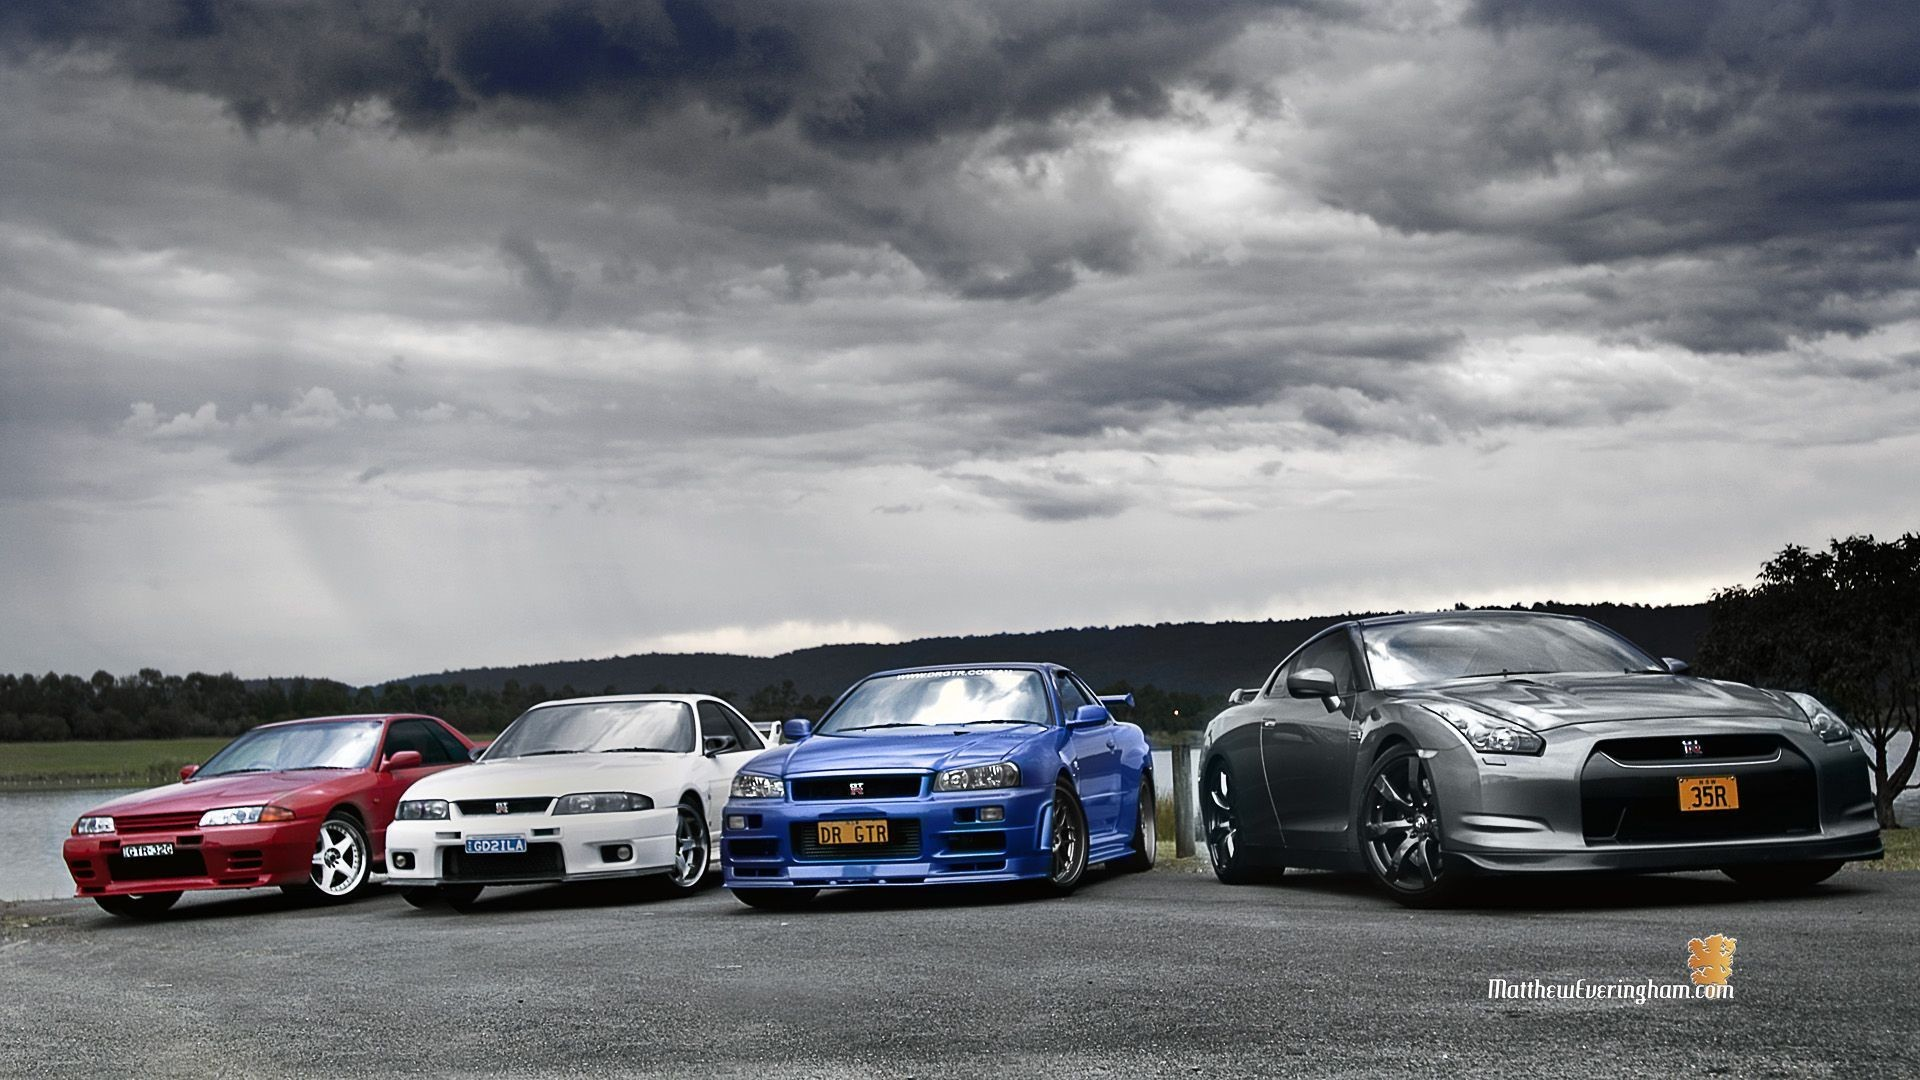 1920x1080 high resolution wallpapers widescreen nissan skyline gtr by Stanton Black